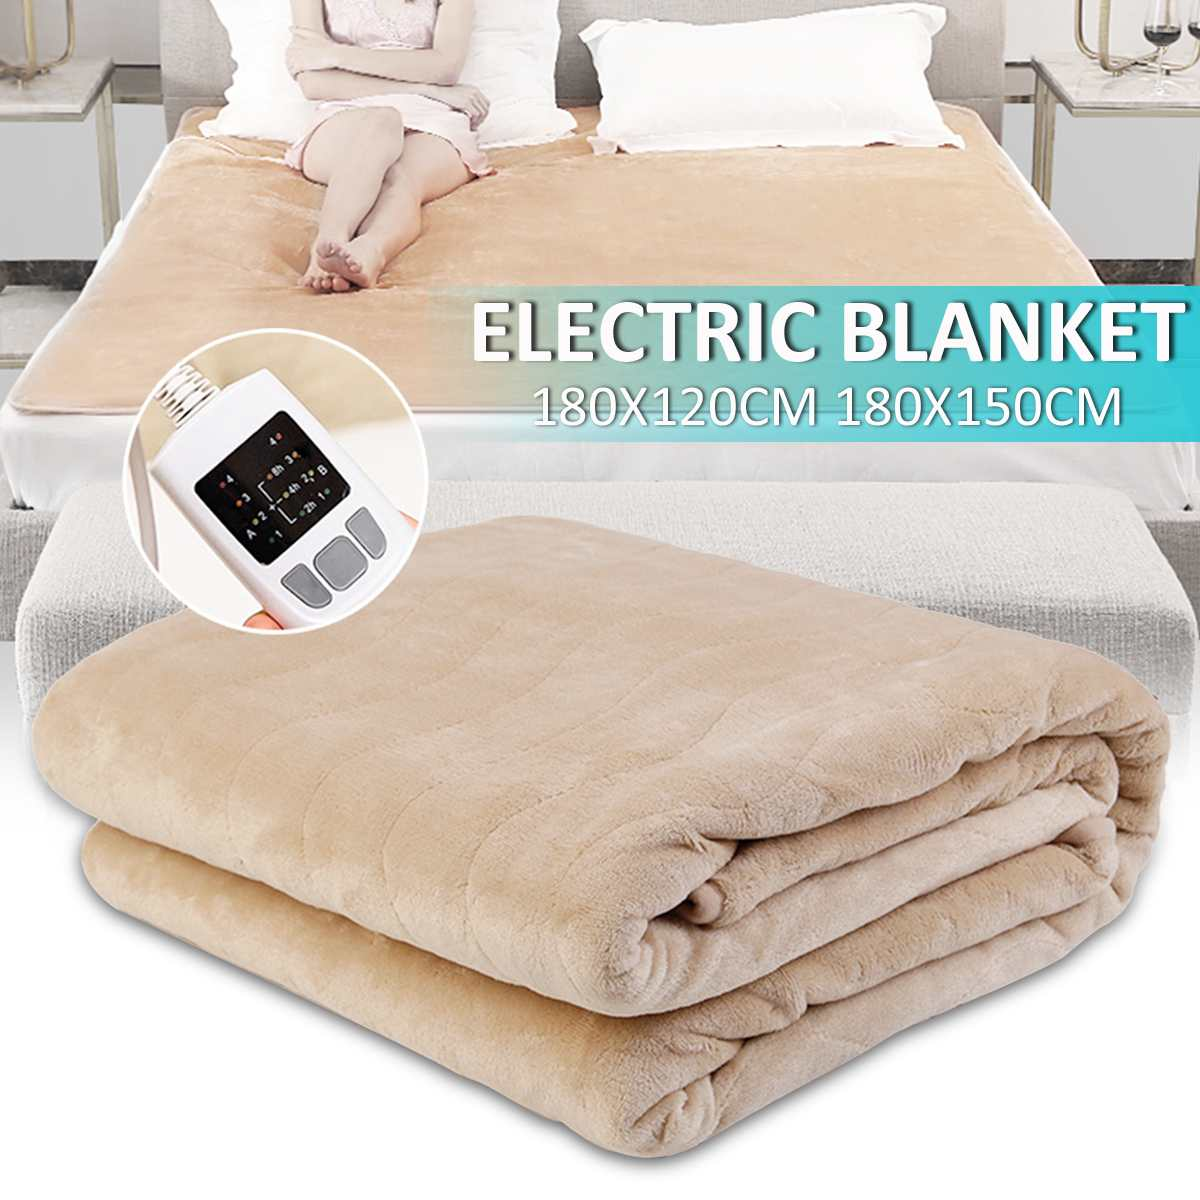 Bed Heater Us 49 5 50 Off Household Security Electric Blanket Dual Heating Body Warmer Adjustable Controller Bed Heater Pad Winter Heated Mattress Carpet In